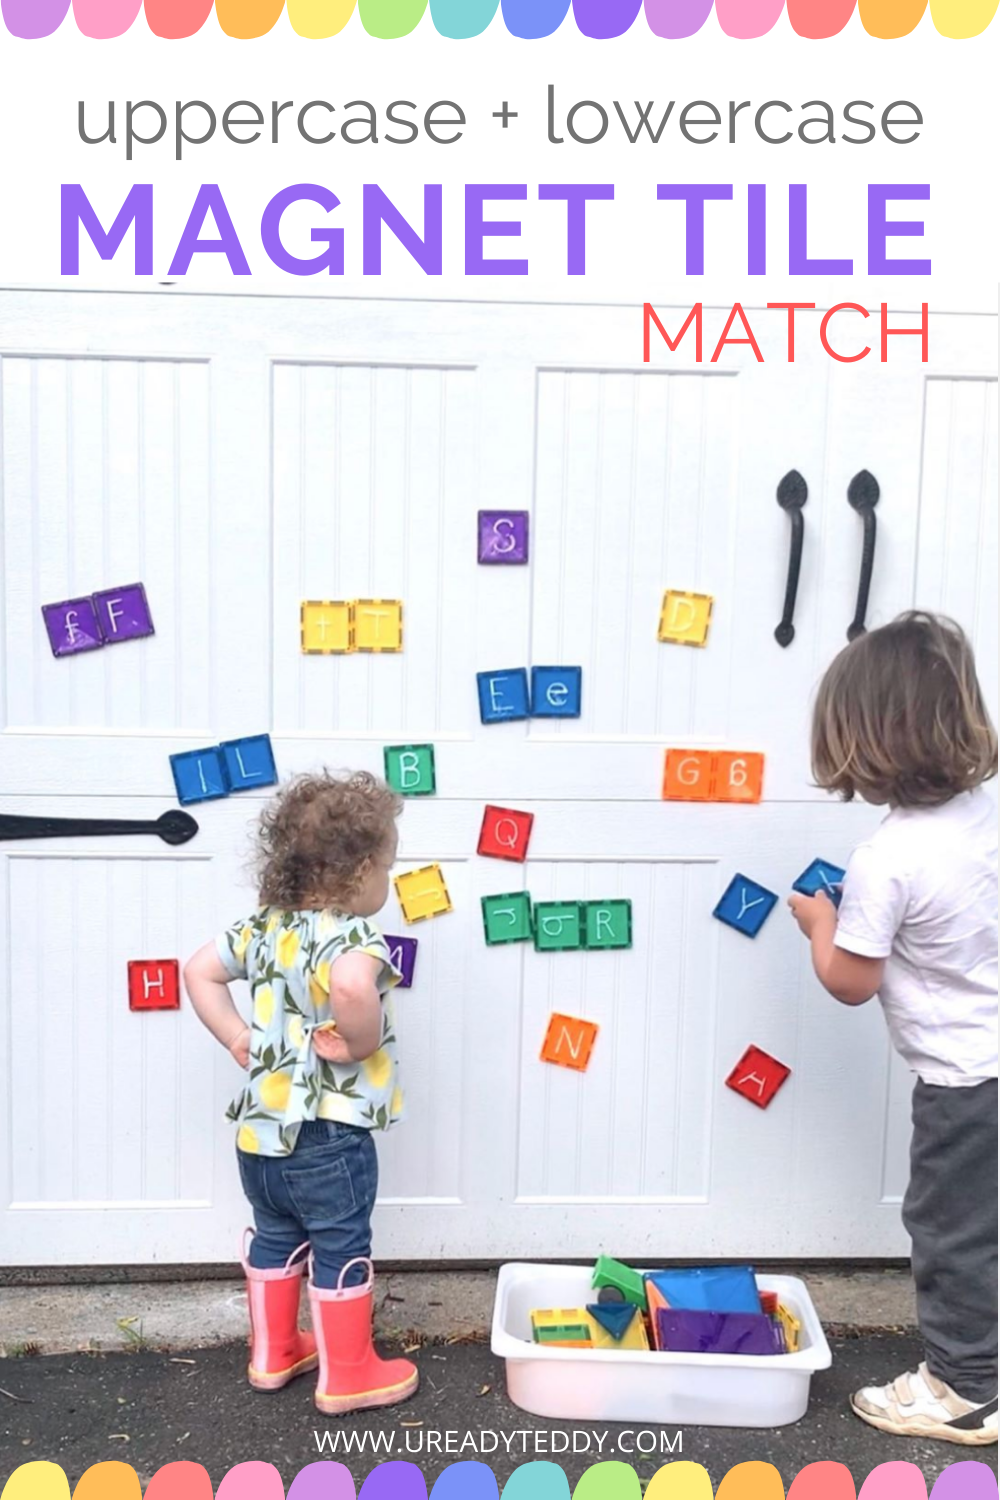 Uppercase Lowercase Magnet Tile Matching Activity, Early Literacy, Magnatile, Connetix, Garage Door, Chalk Marker, Dry Erase Marker Alphabet